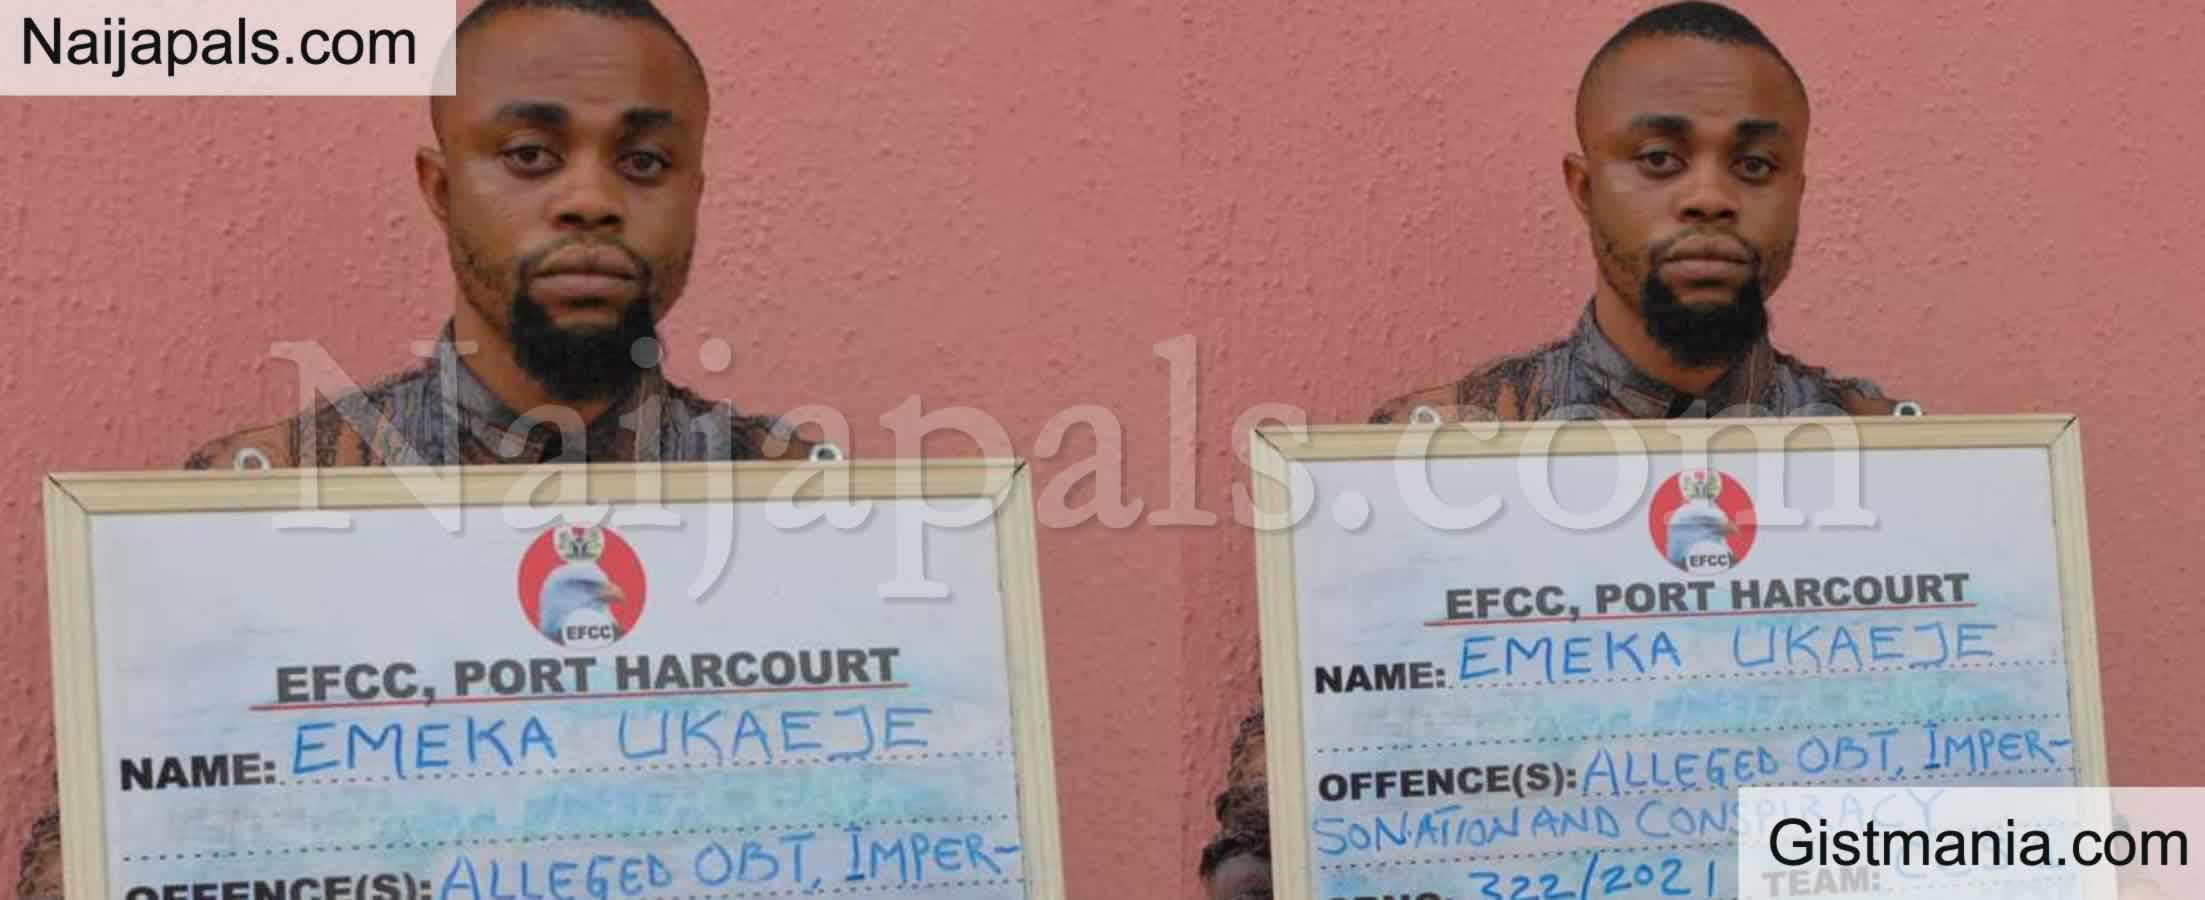 <img alt='.' class='lazyload' data-src='https://img.gistmania.com/emot/news.gif' /> <b>Leader of Human Organs Traffickers, Emeka John Ukaeje Arrested by EFCC in Port Harcourt</b>